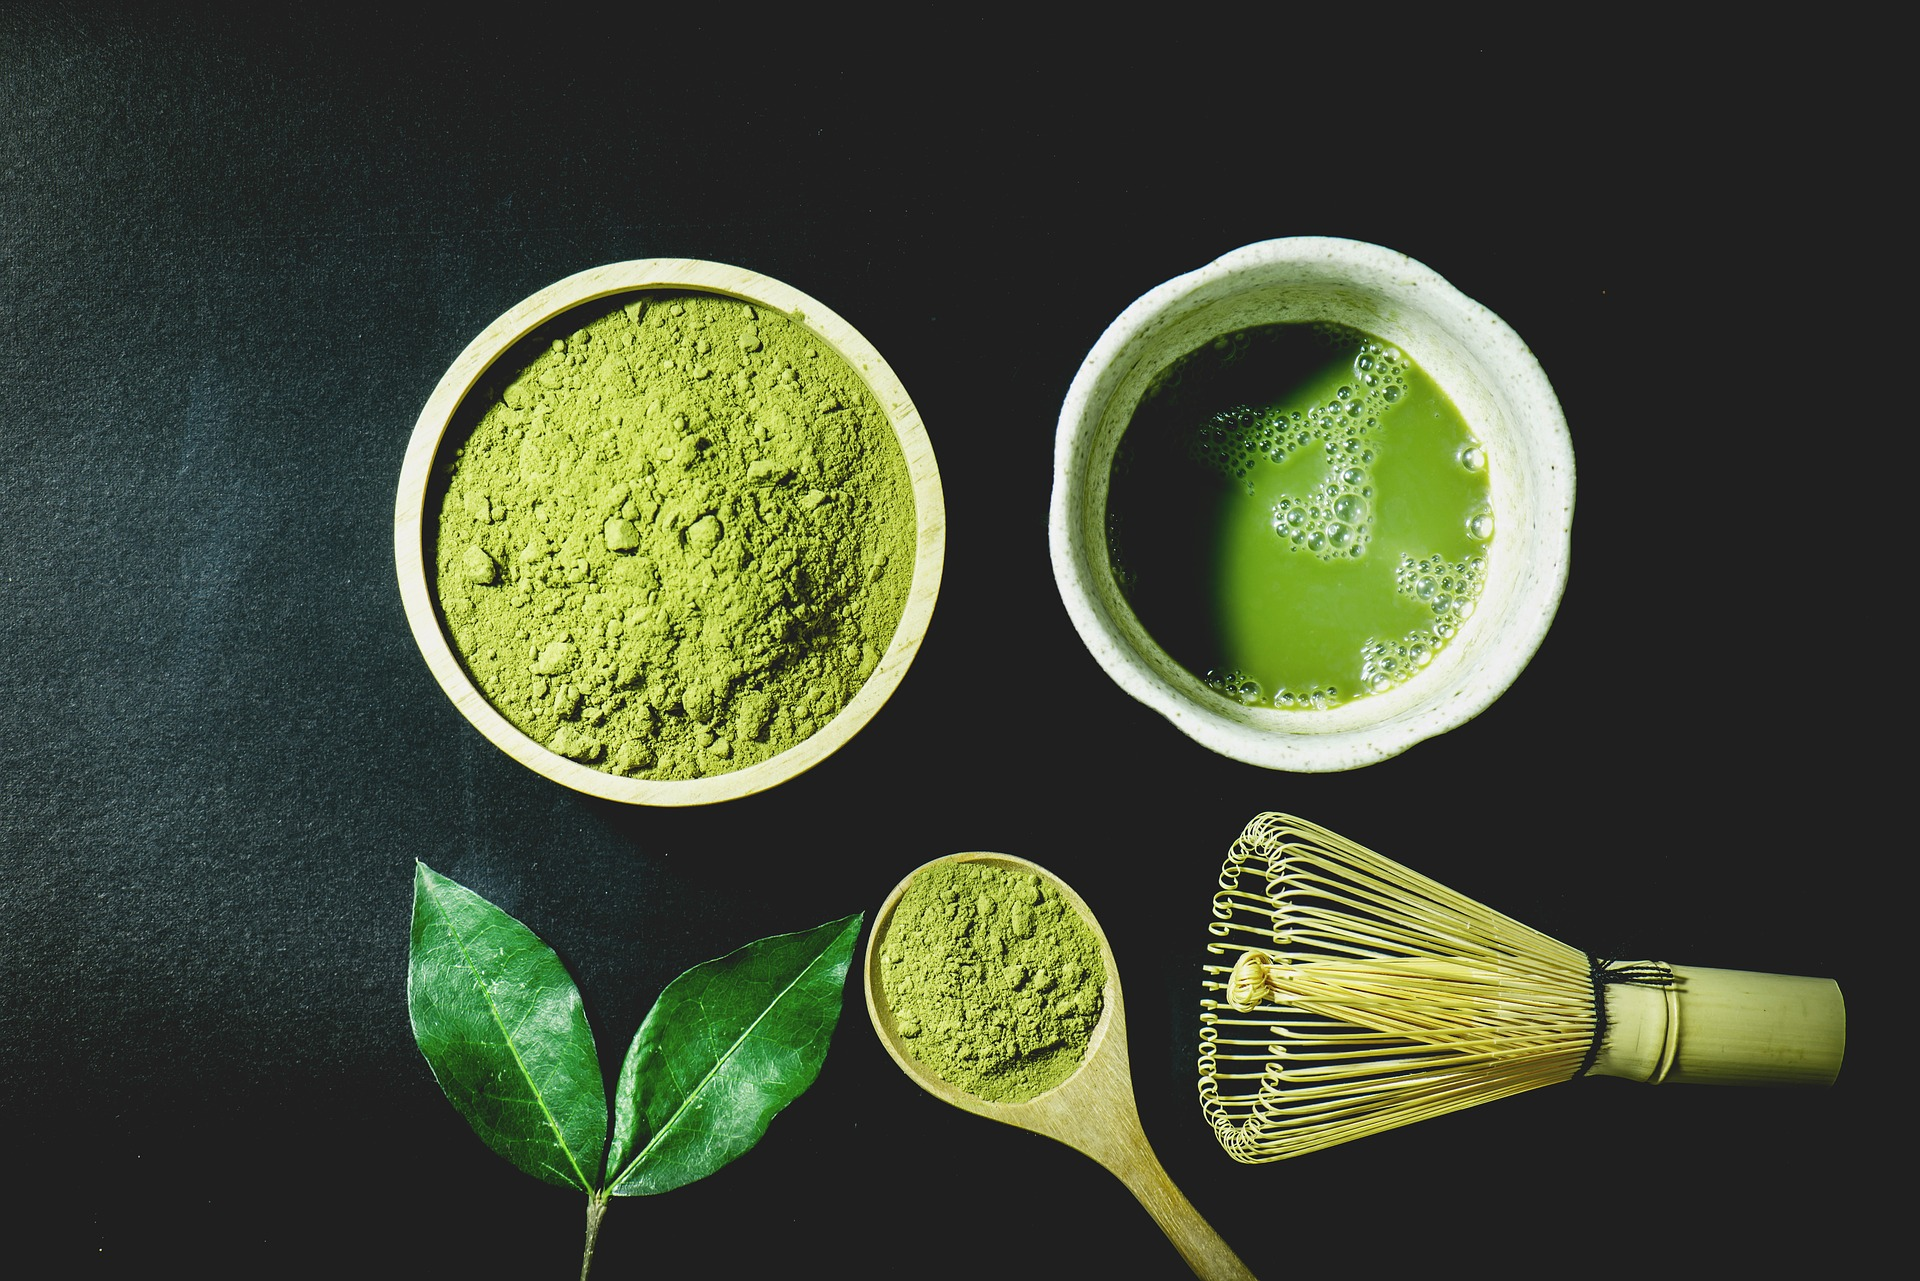 Matcha (pulverized green tea) has a ton of benefits, is lower in caffeine than coffee and great for helping you hydrate.